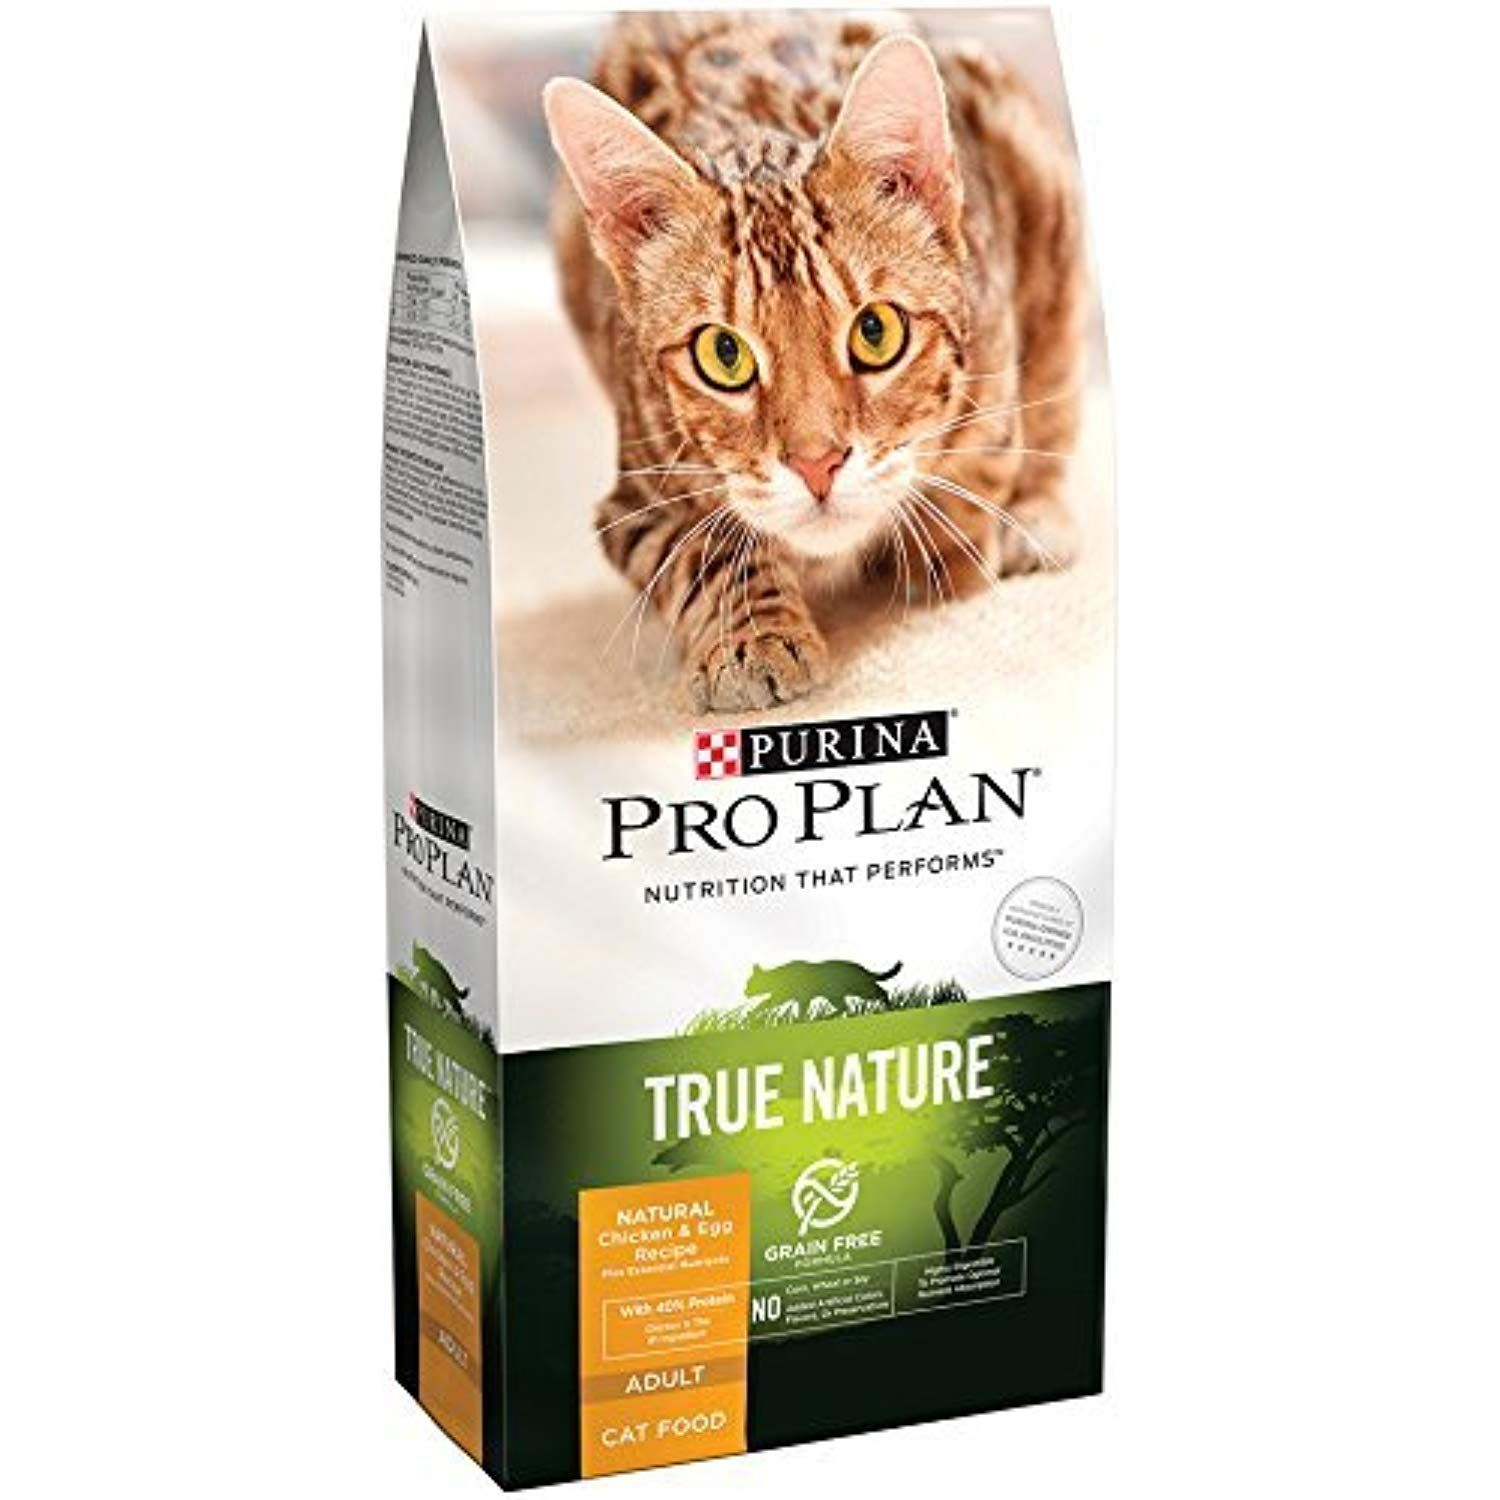 Purina Pro Plan Dry Cat Food True Nature Grain Free Formula Chicken And Egg Recipe 6 Pound By Purina Pro Plan Chec Dry Cat Food Purina Pro Plan Cat Food